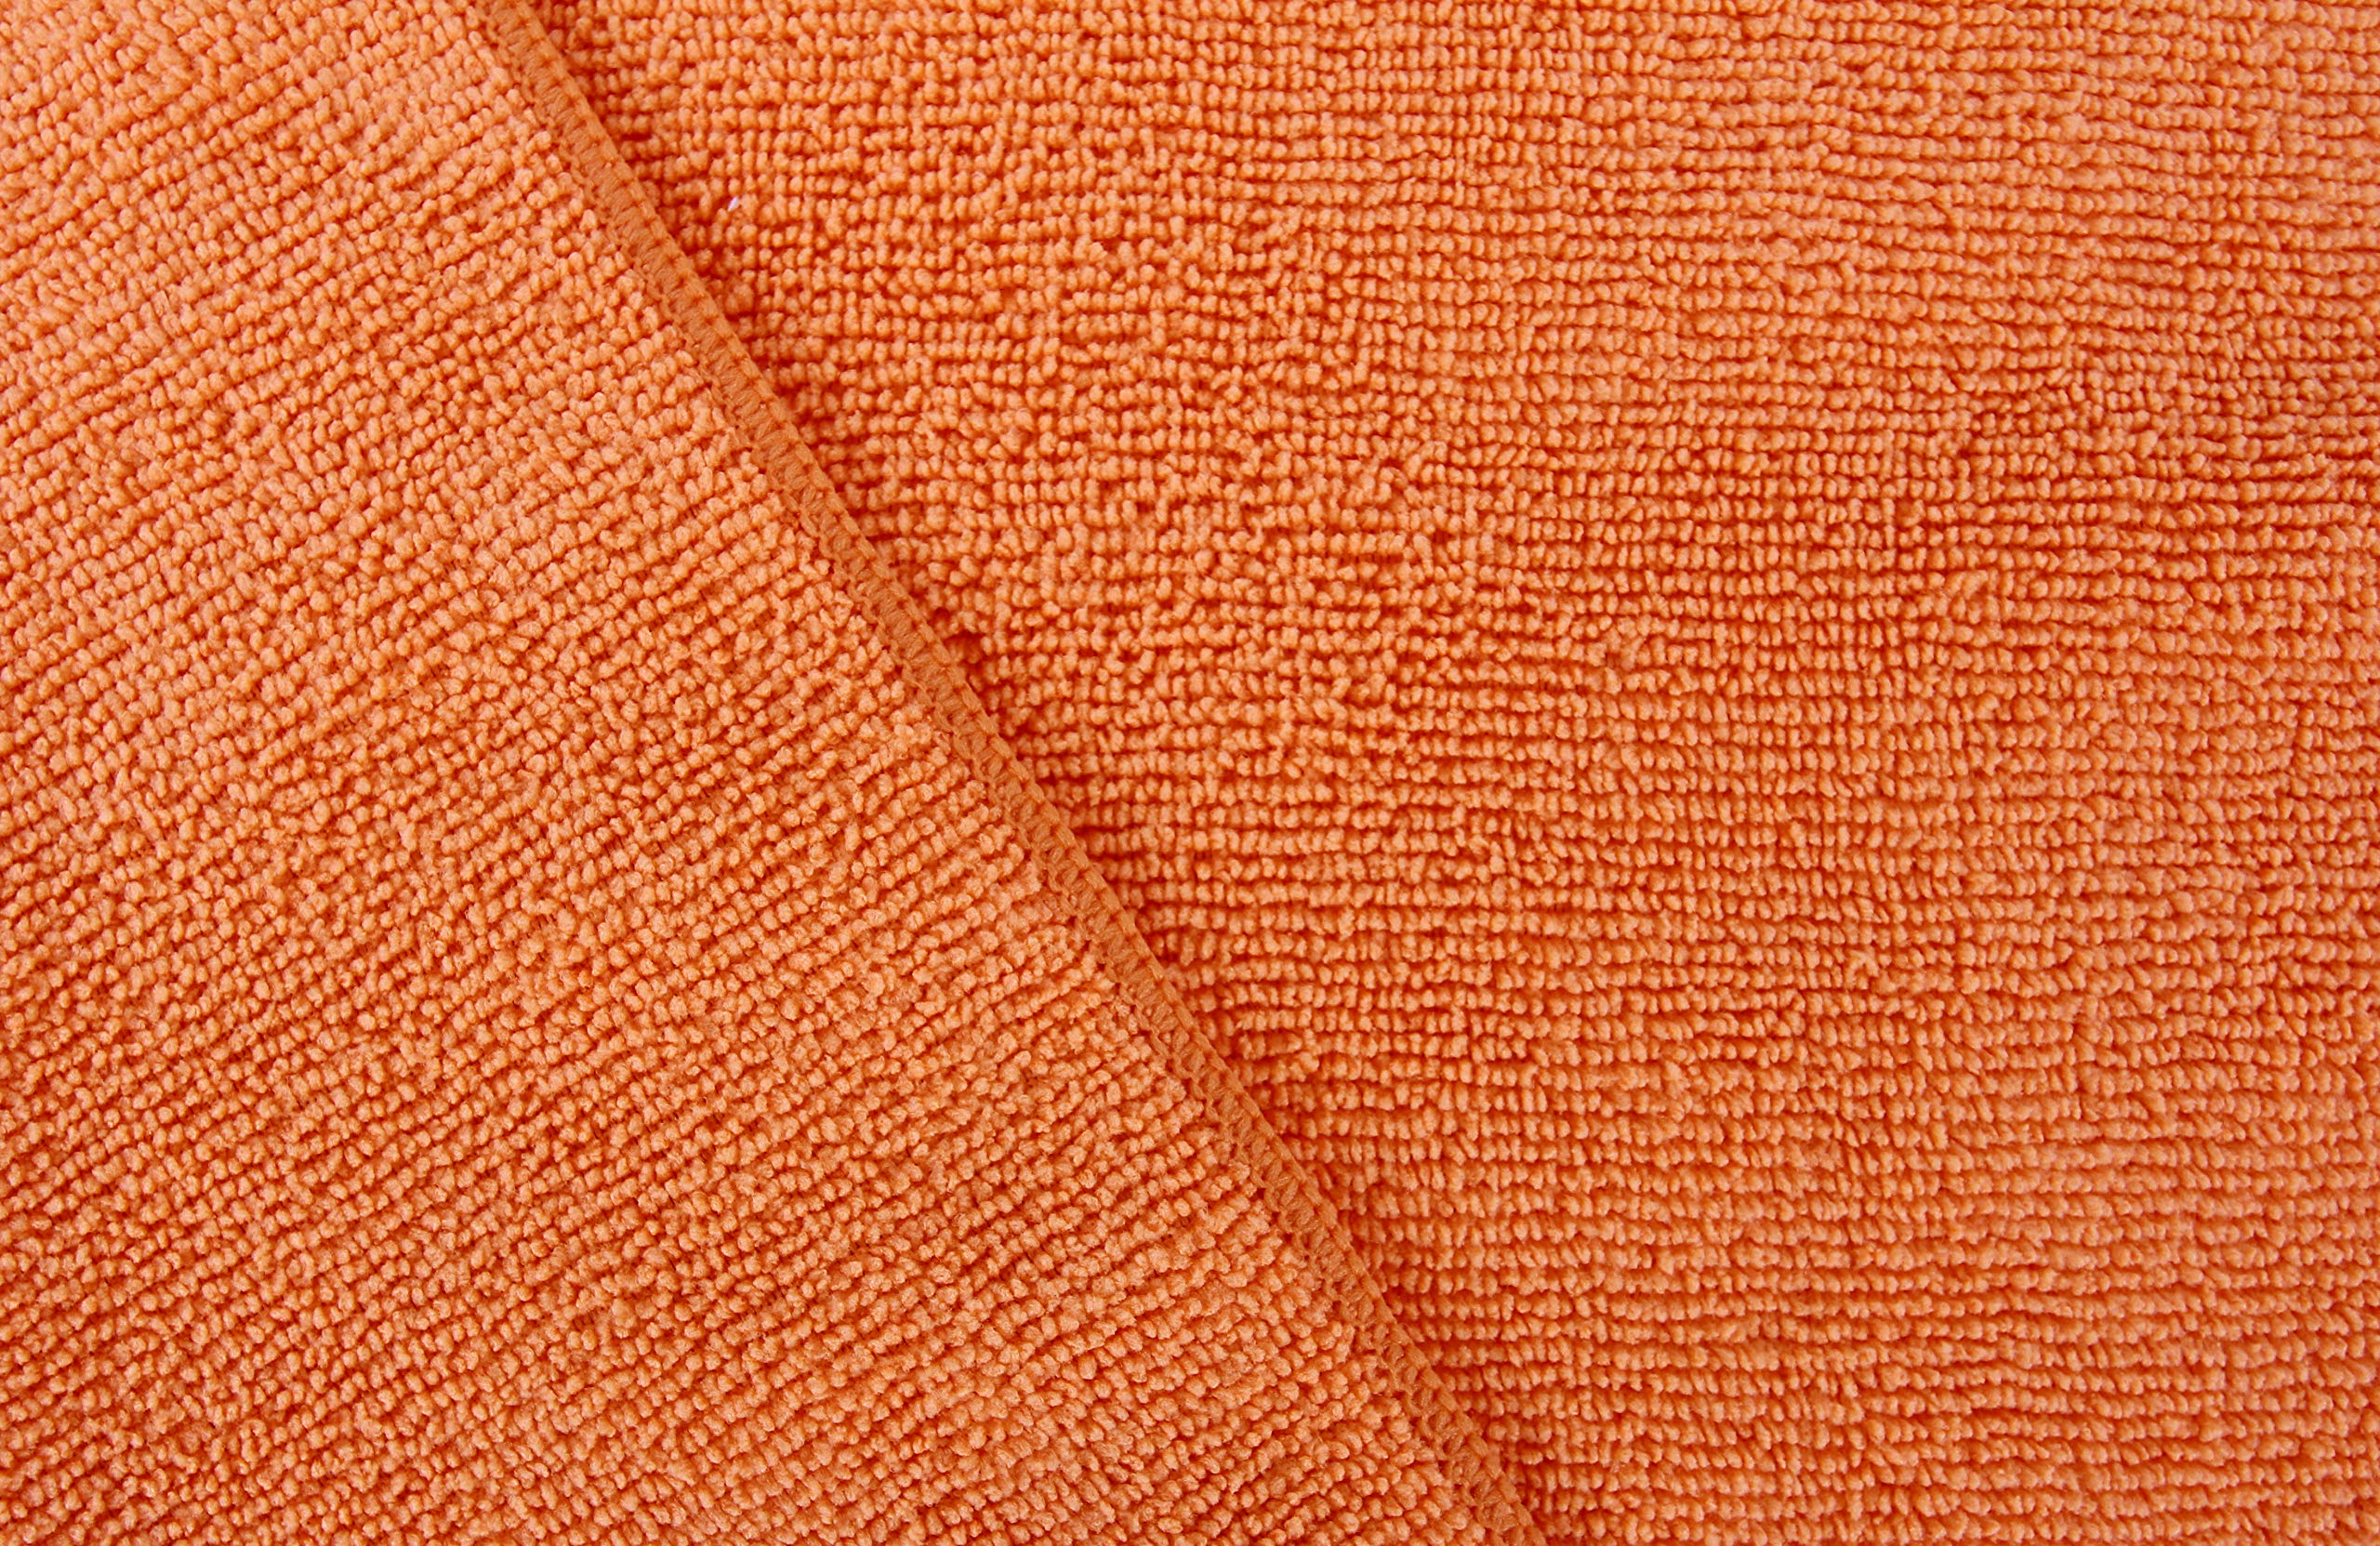 Dri Microfiber Cleaning Cloth Plus 16 x 16 inch (Commerical Grade, Extra Absorb, Cleaning Power and Dry Fast) (240, Orange) by DRI (Image #2)